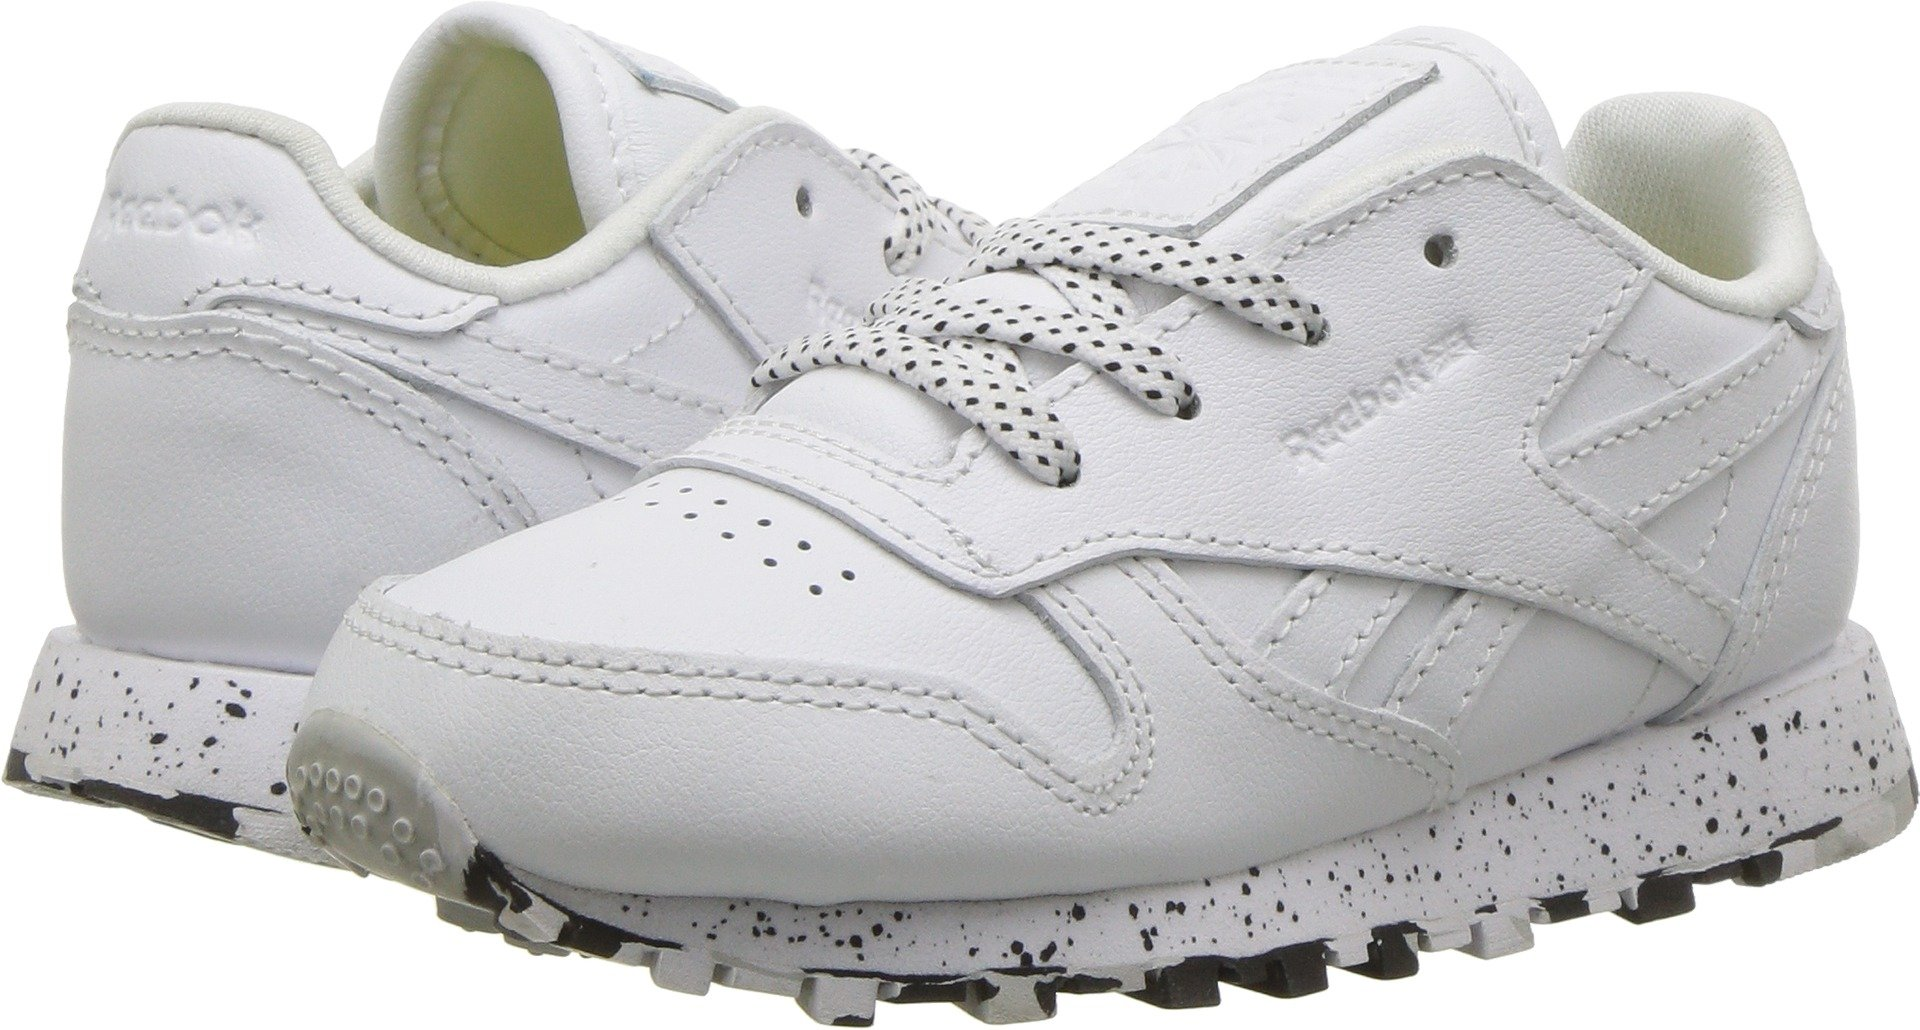 a972a89f02c98 Galleon - Reebok Kids Unisex Classic Leather (Infant Toddler) White Black 6  M US Toddler